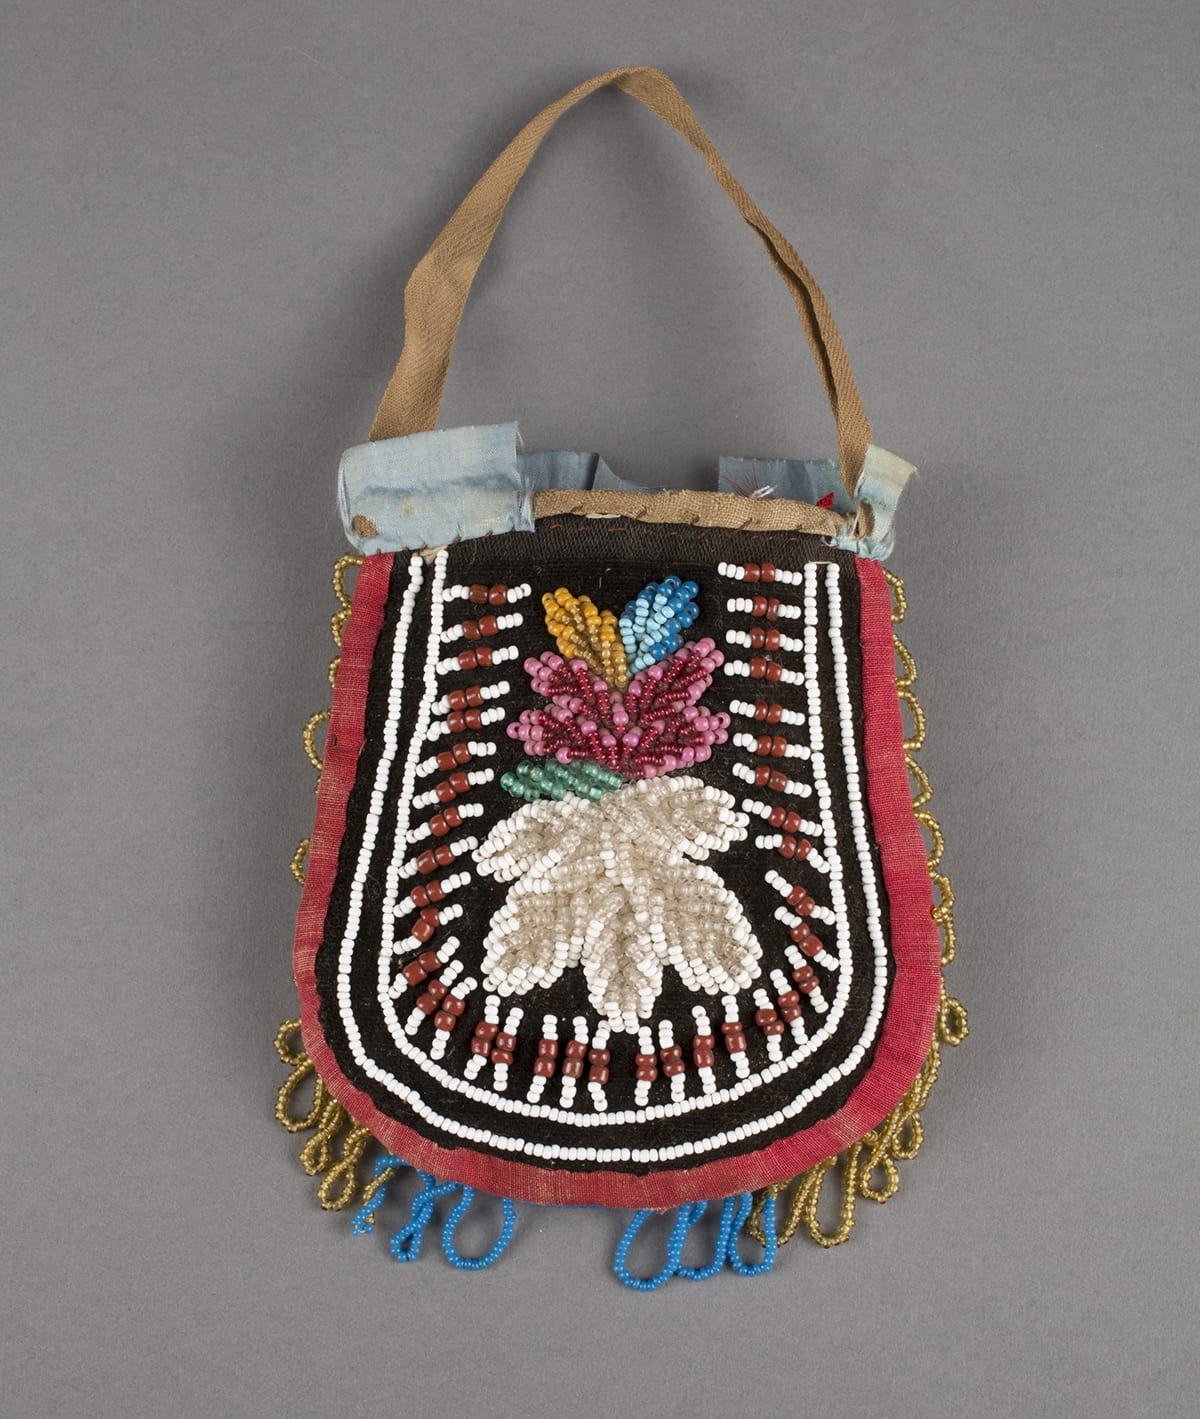 Haudenosaunee/Iroquois artist, Pouch, 8 x 4 inches, cotton, silk and glass beads. A photo of a colorful U-shaped pouch with handle against a gray background. The pouch is slightly narrower at the top then widens at the bottom. At the center, set against black velvet is a large, white, beaded flower topped by a pink, beaded flower with pale green, gold, and blue, beaded leaves. Surrounding the flowers are white and brick-red beadwork lines composed of three white beads, two larger brick-red beads, then three white beads. Each line radiates outward from the flowers at center. Two lines of white beading encompasses the center designs running along the edge of the pouch. At the outer edge of the pouch is a red cotton border with loops of gold beads along the sides and turquoise blue beaded loops along the bottom. Some areas of beading are missing at the bottom center and at the left edge. The top of the pouch shows a thin, short, tan cotton handle. Pale blue ribbon embellishes the opening of the pouch but is partially missing, exposing the hand stitching along the pouch's opening.